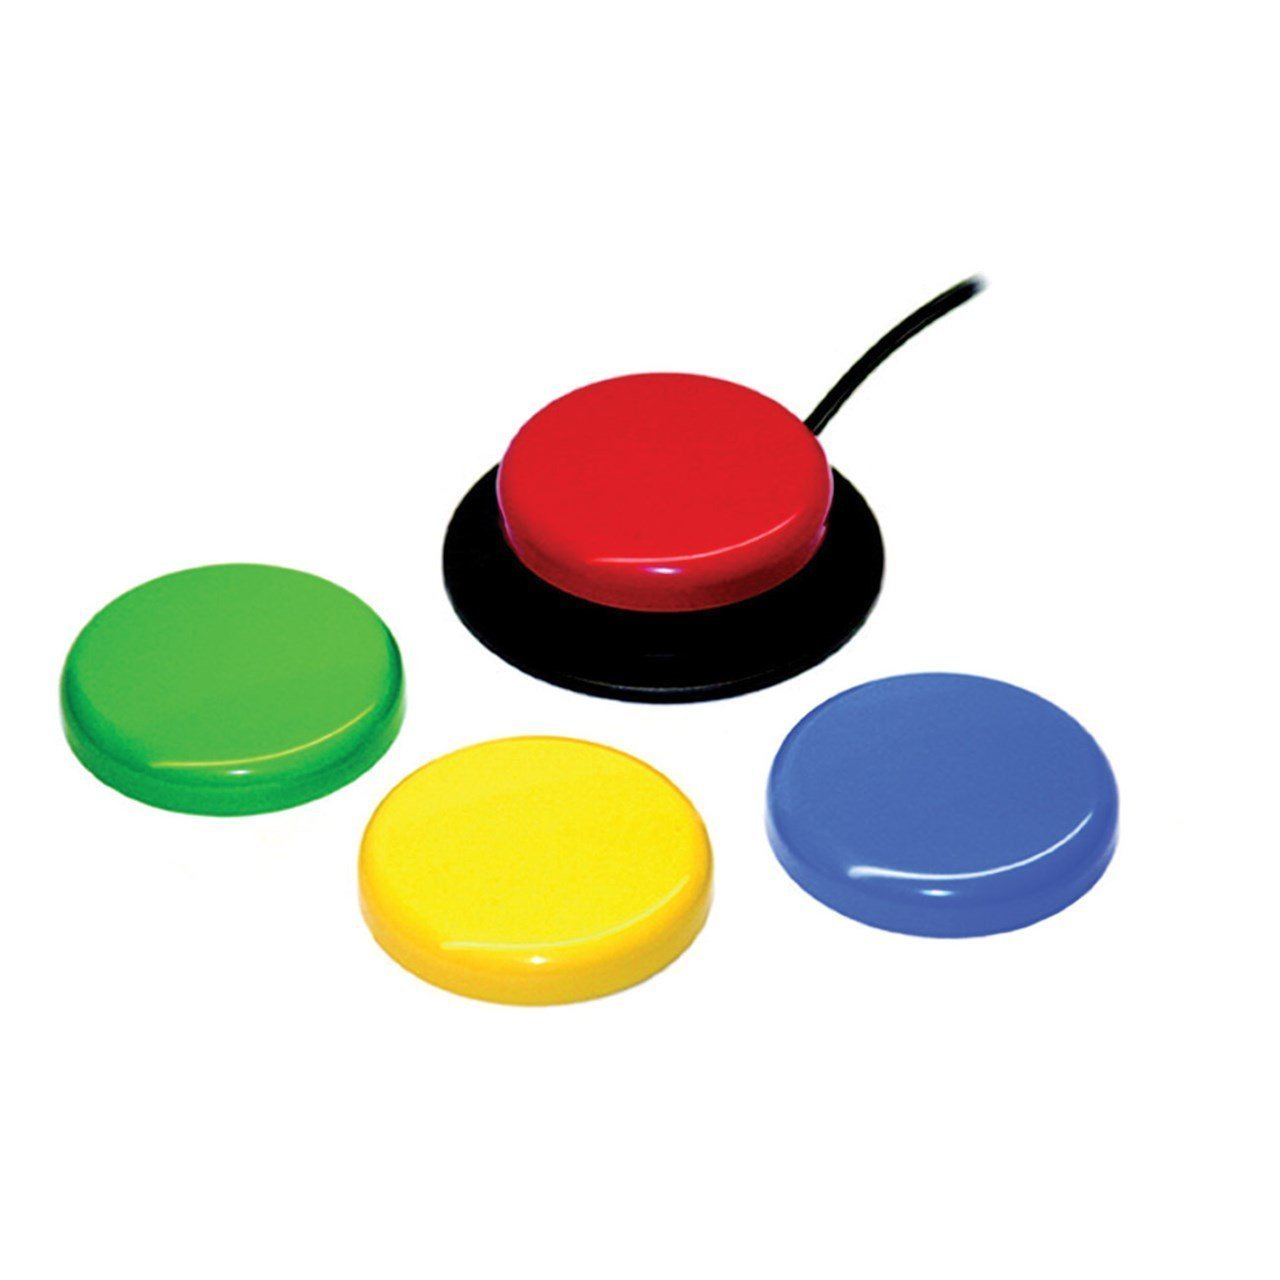 Jelly Bean Mechanical Switch, Accessible Button for Disabled and Handicapped People, with Limited Mobility, Lack of Coordination, and Special Needs, 4 different Button Colors, 2.5'' Button : 10033400